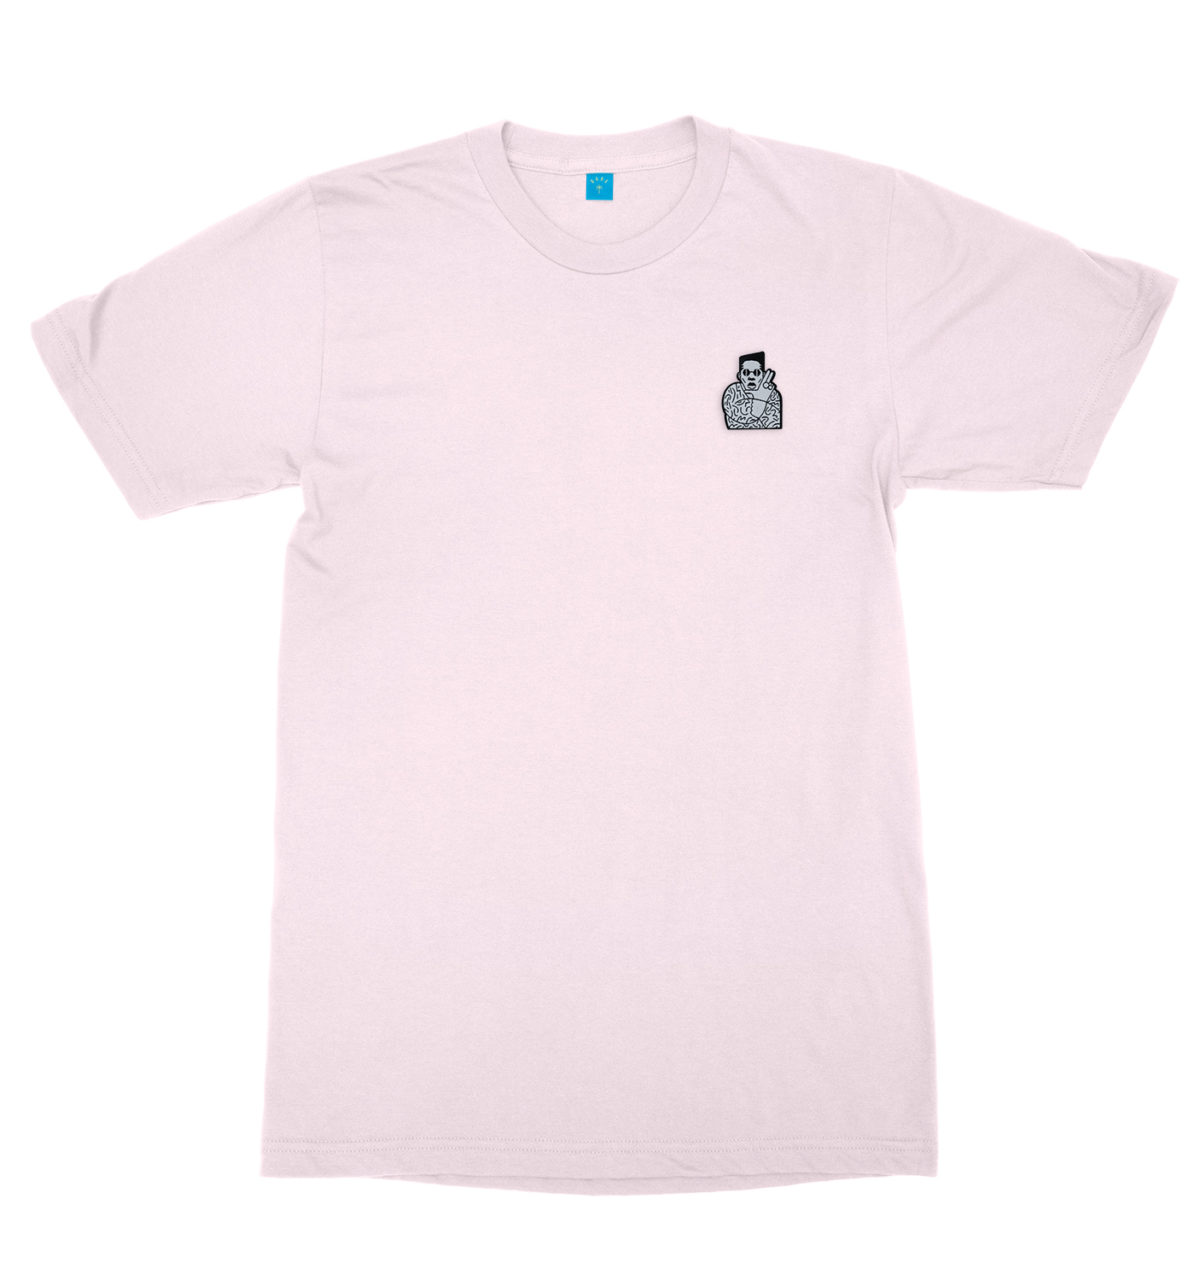 Shabba T-shirt (pink) by GABE